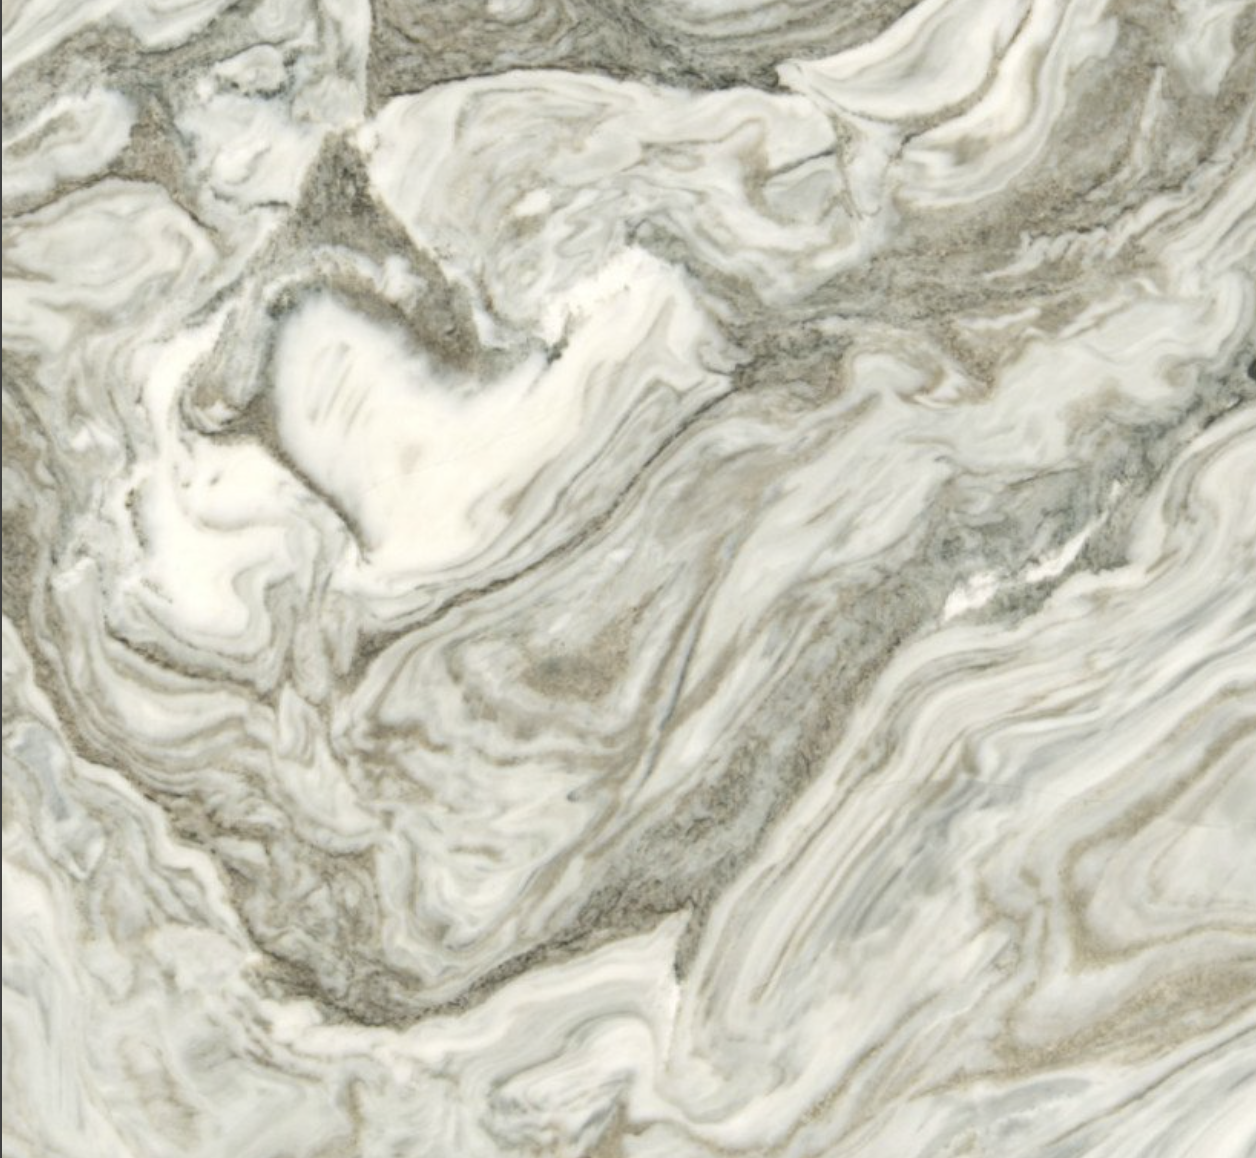 Burlesque - Burlesque is a sophisticated quartzite from Brazil. Its elegant appearance make it suitable for many designs.    Matter of Stuff